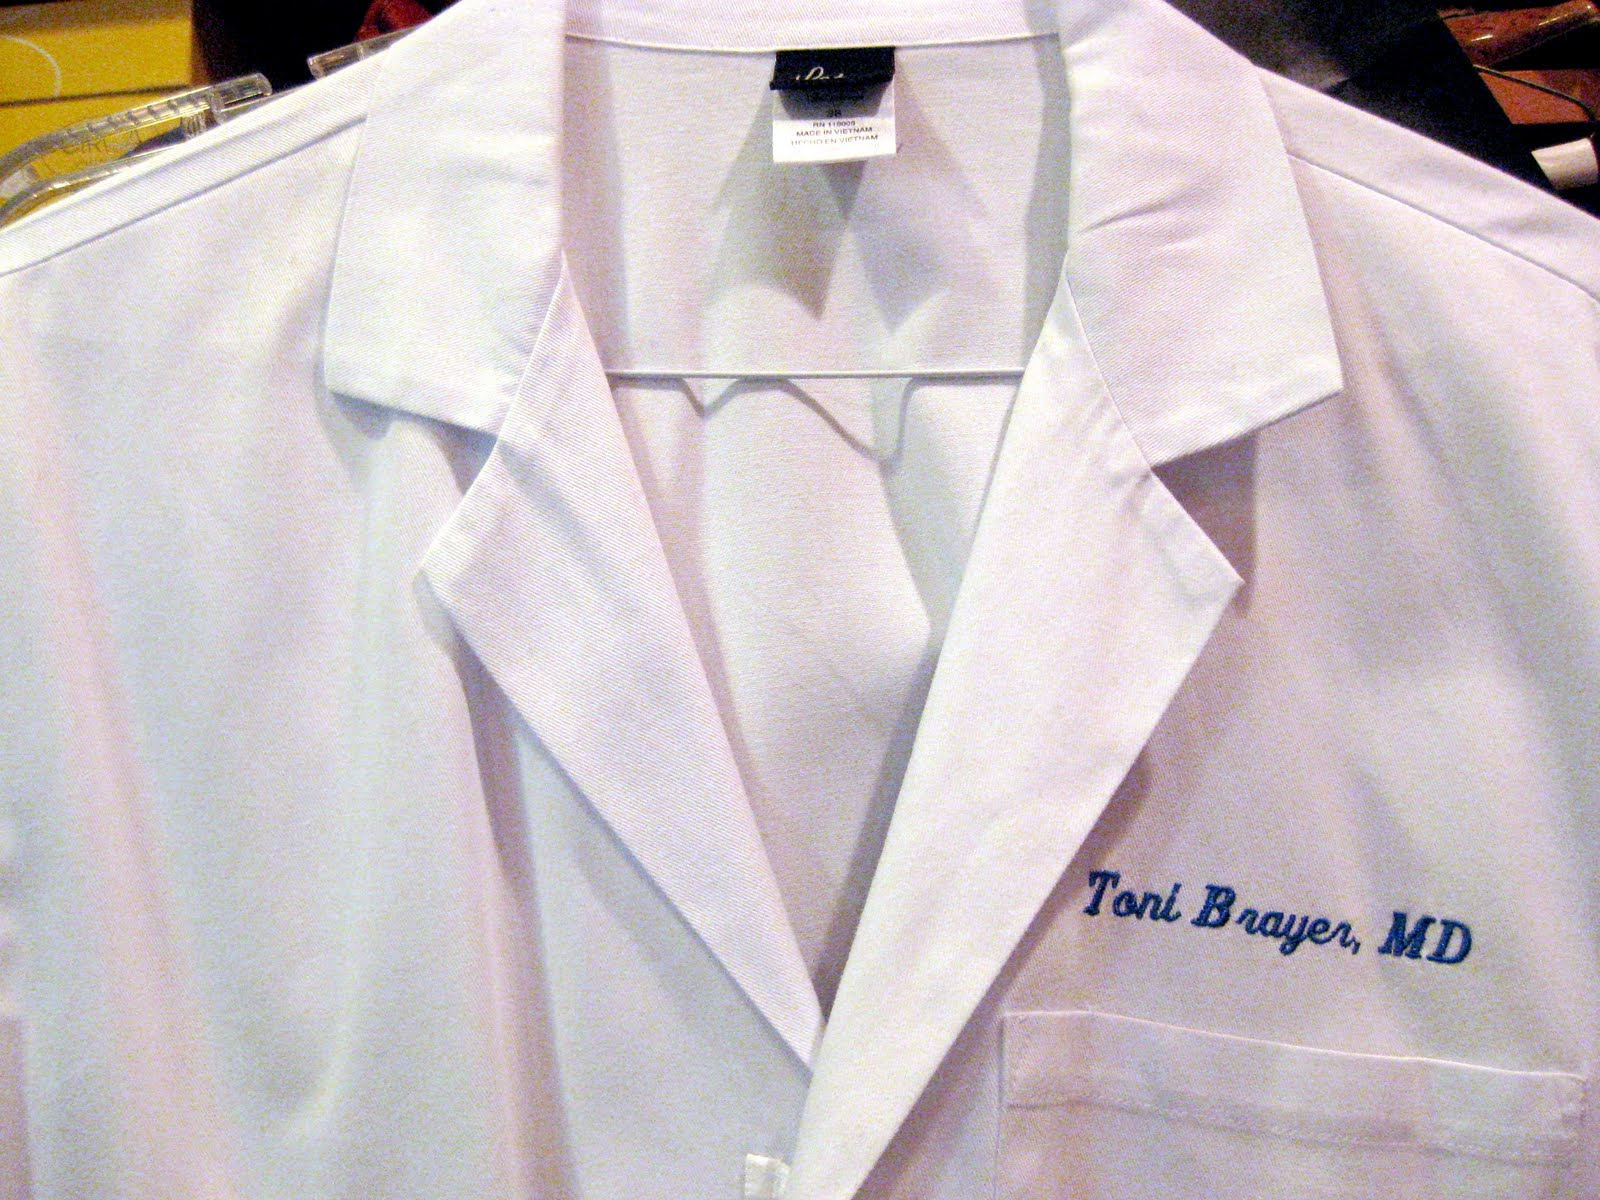 Should Physicians Wear White Coats? - Better Health